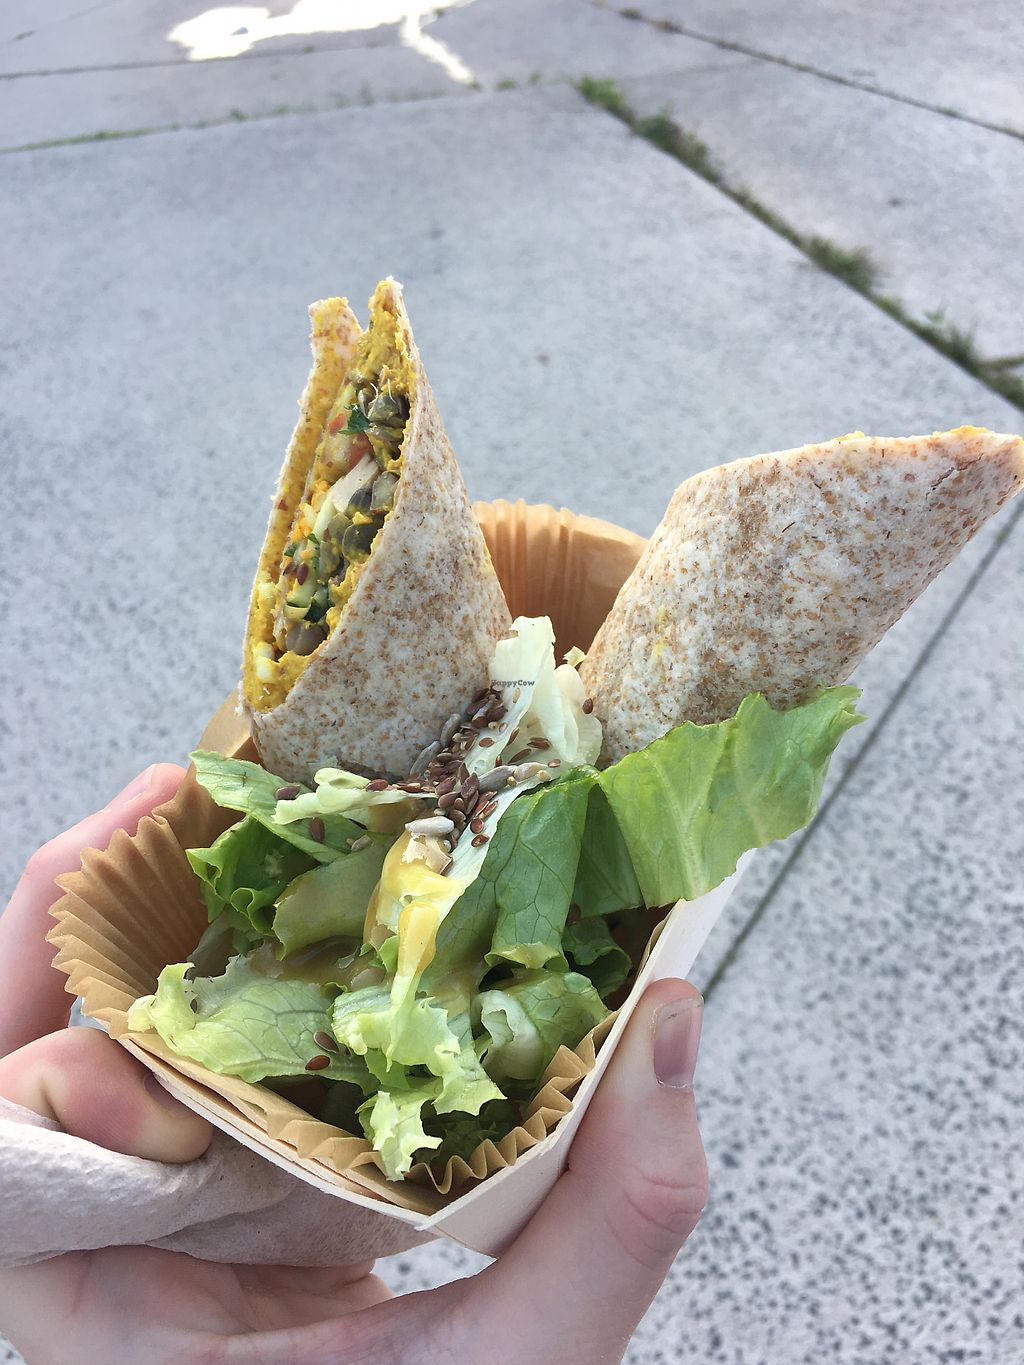 "Photo of L'Essentiel Chez Raphael - Food Truck  by <a href=""/members/profile/Jonathon67"">Jonathon67</a> <br/>Vegan Hummus Wrap 03 Sep 2017 ❤️ <br/> September 3, 2017  - <a href='/contact/abuse/image/77936/300482'>Report</a>"